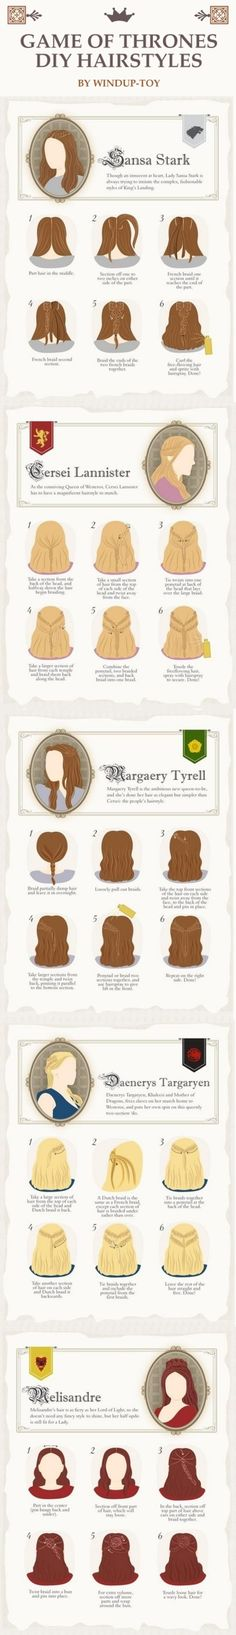 Game of Thrones DIY Hairstyles by Windup-Toy!